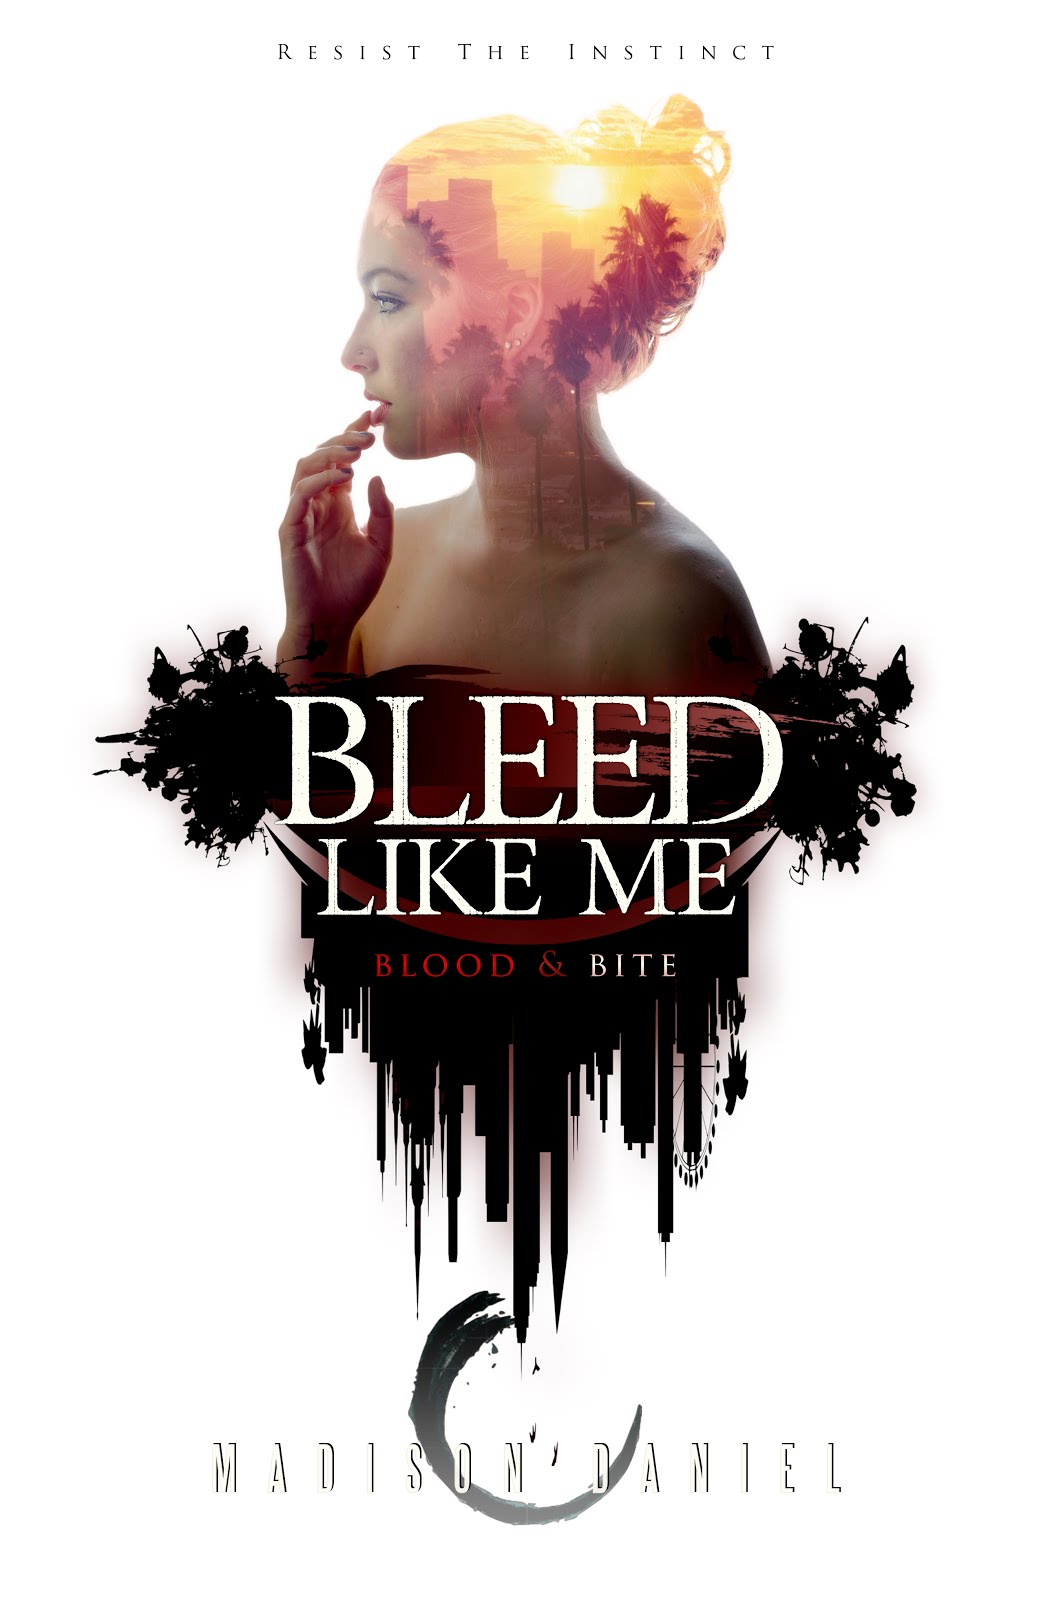 Bleed Like Me: Blood & Bite